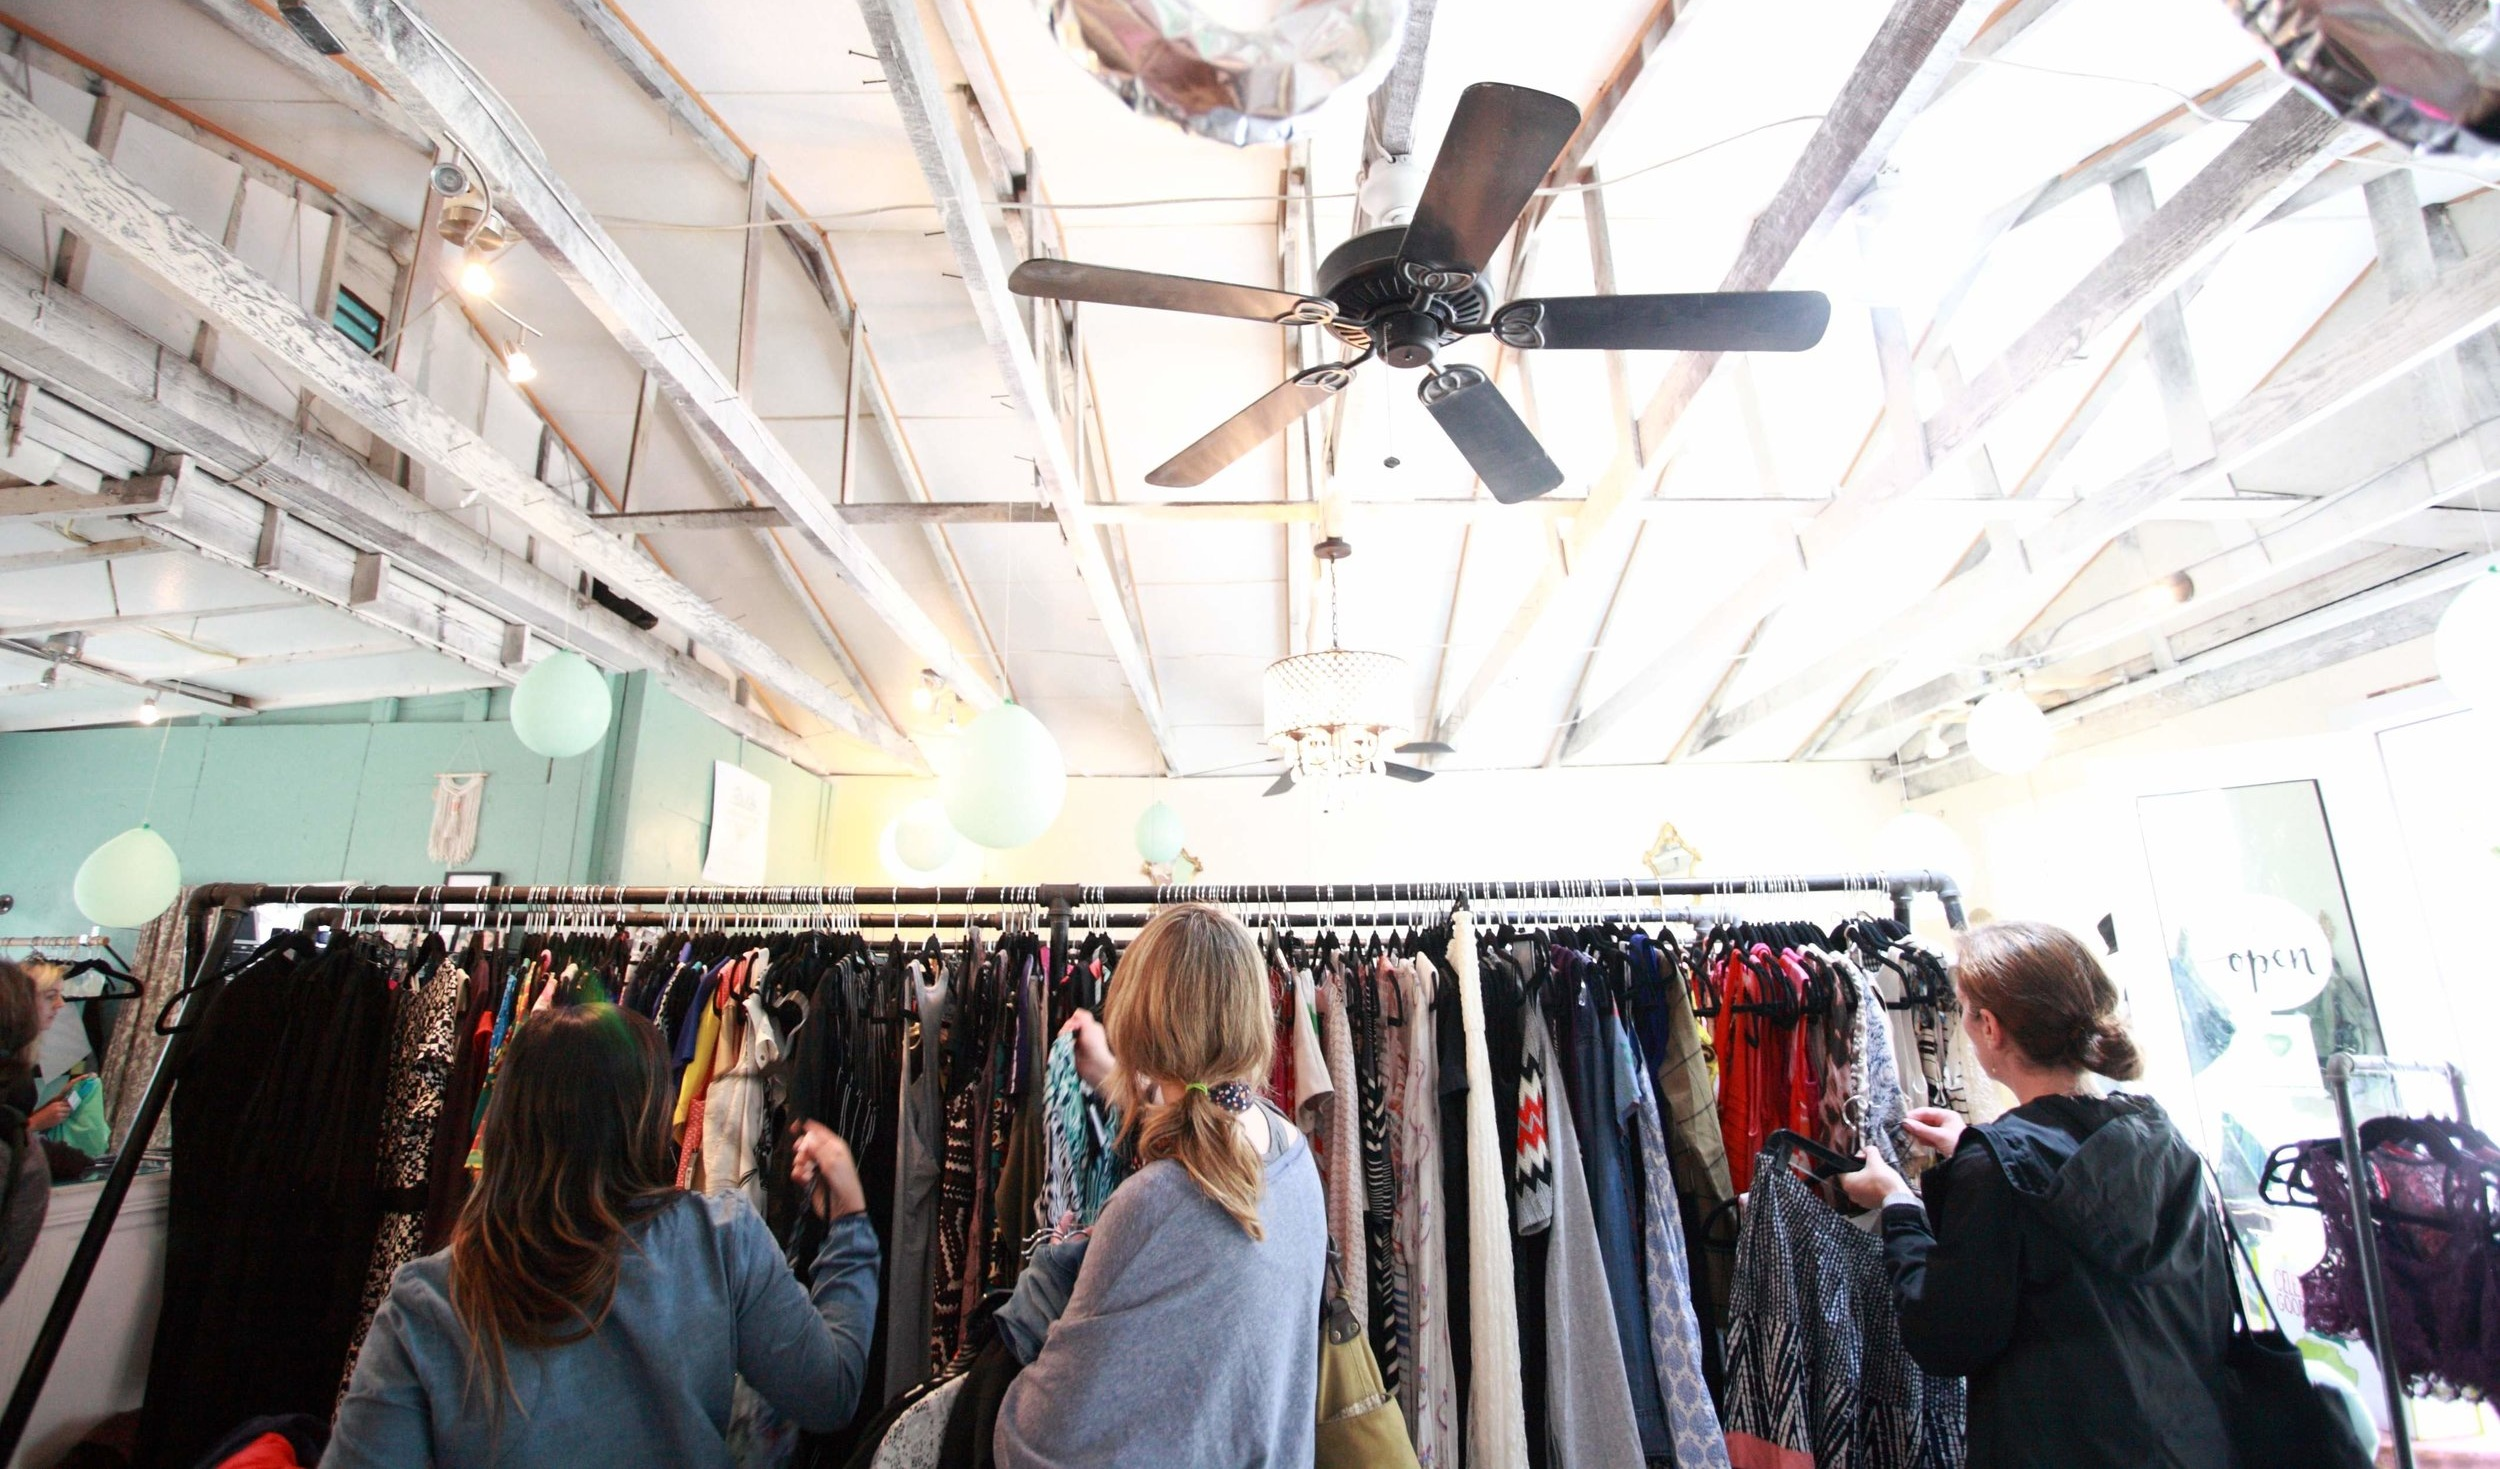 WElcome to Gather Resale! - Discover modern, high quality resale fashion in our clothing studio